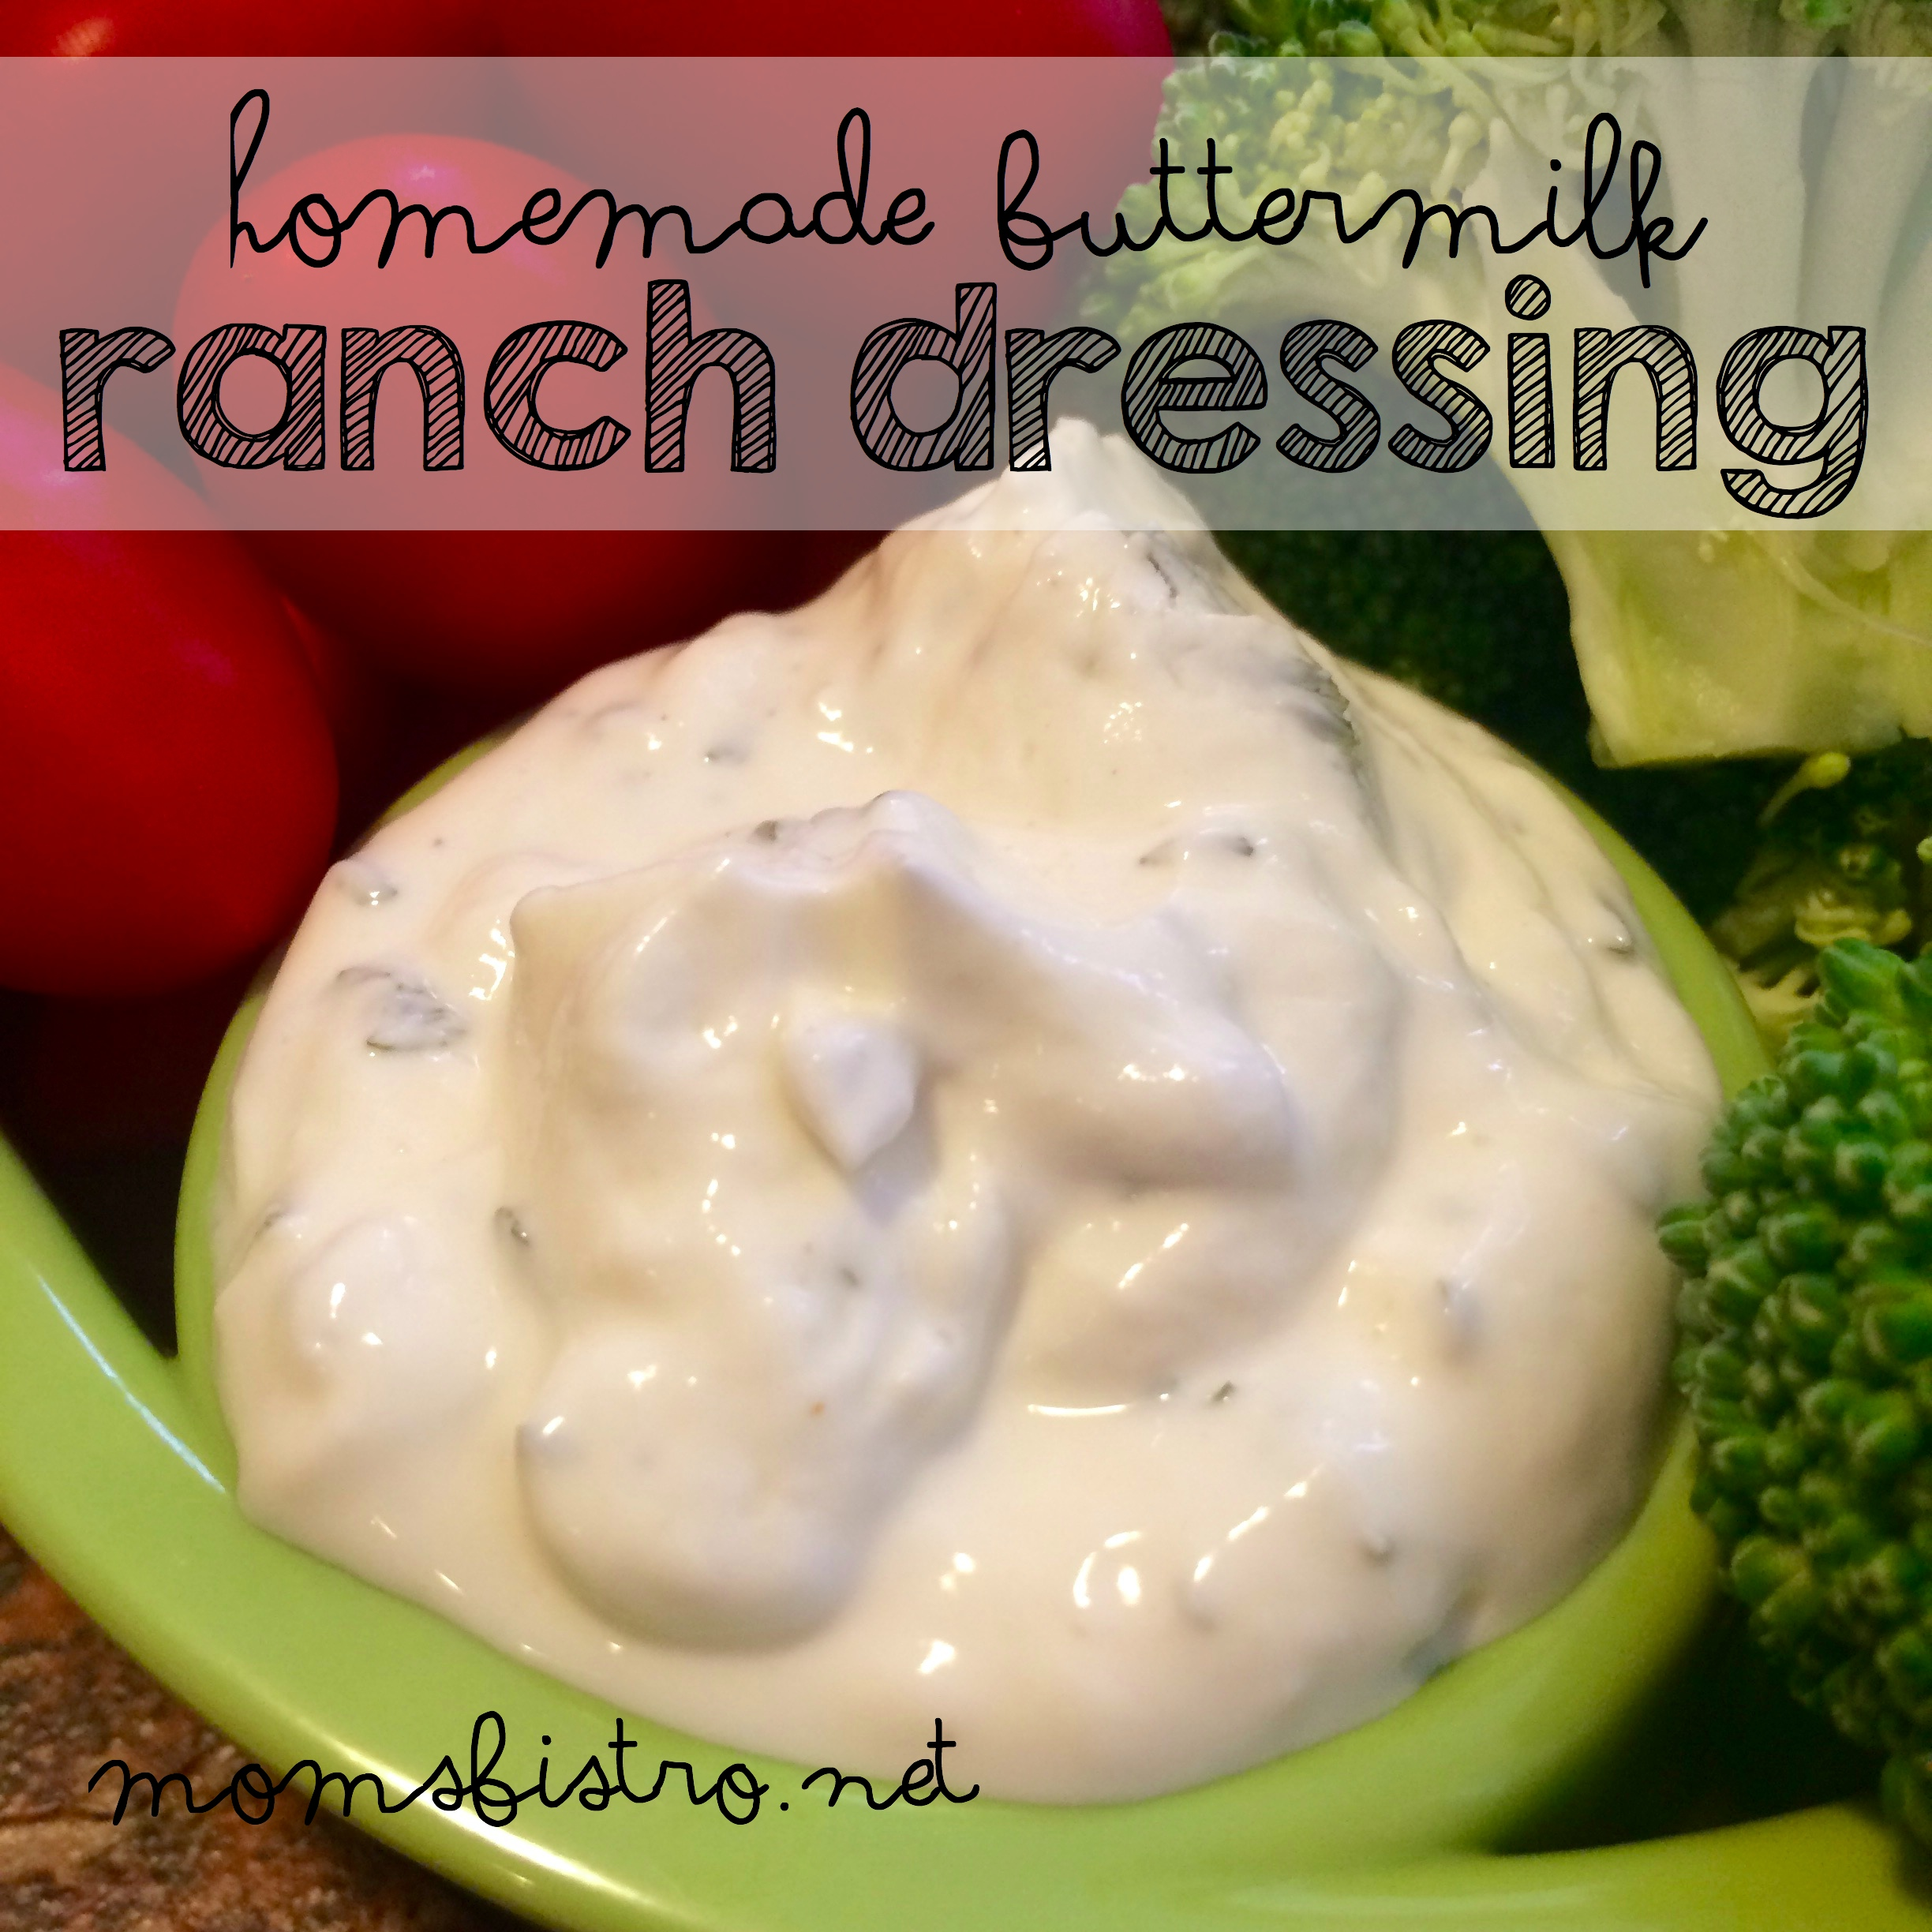 Homemade Buttermilk Ranch Dressing Recipe – Try This Easy Homemade Version Once and Never Buy Ranch Dressing Again!